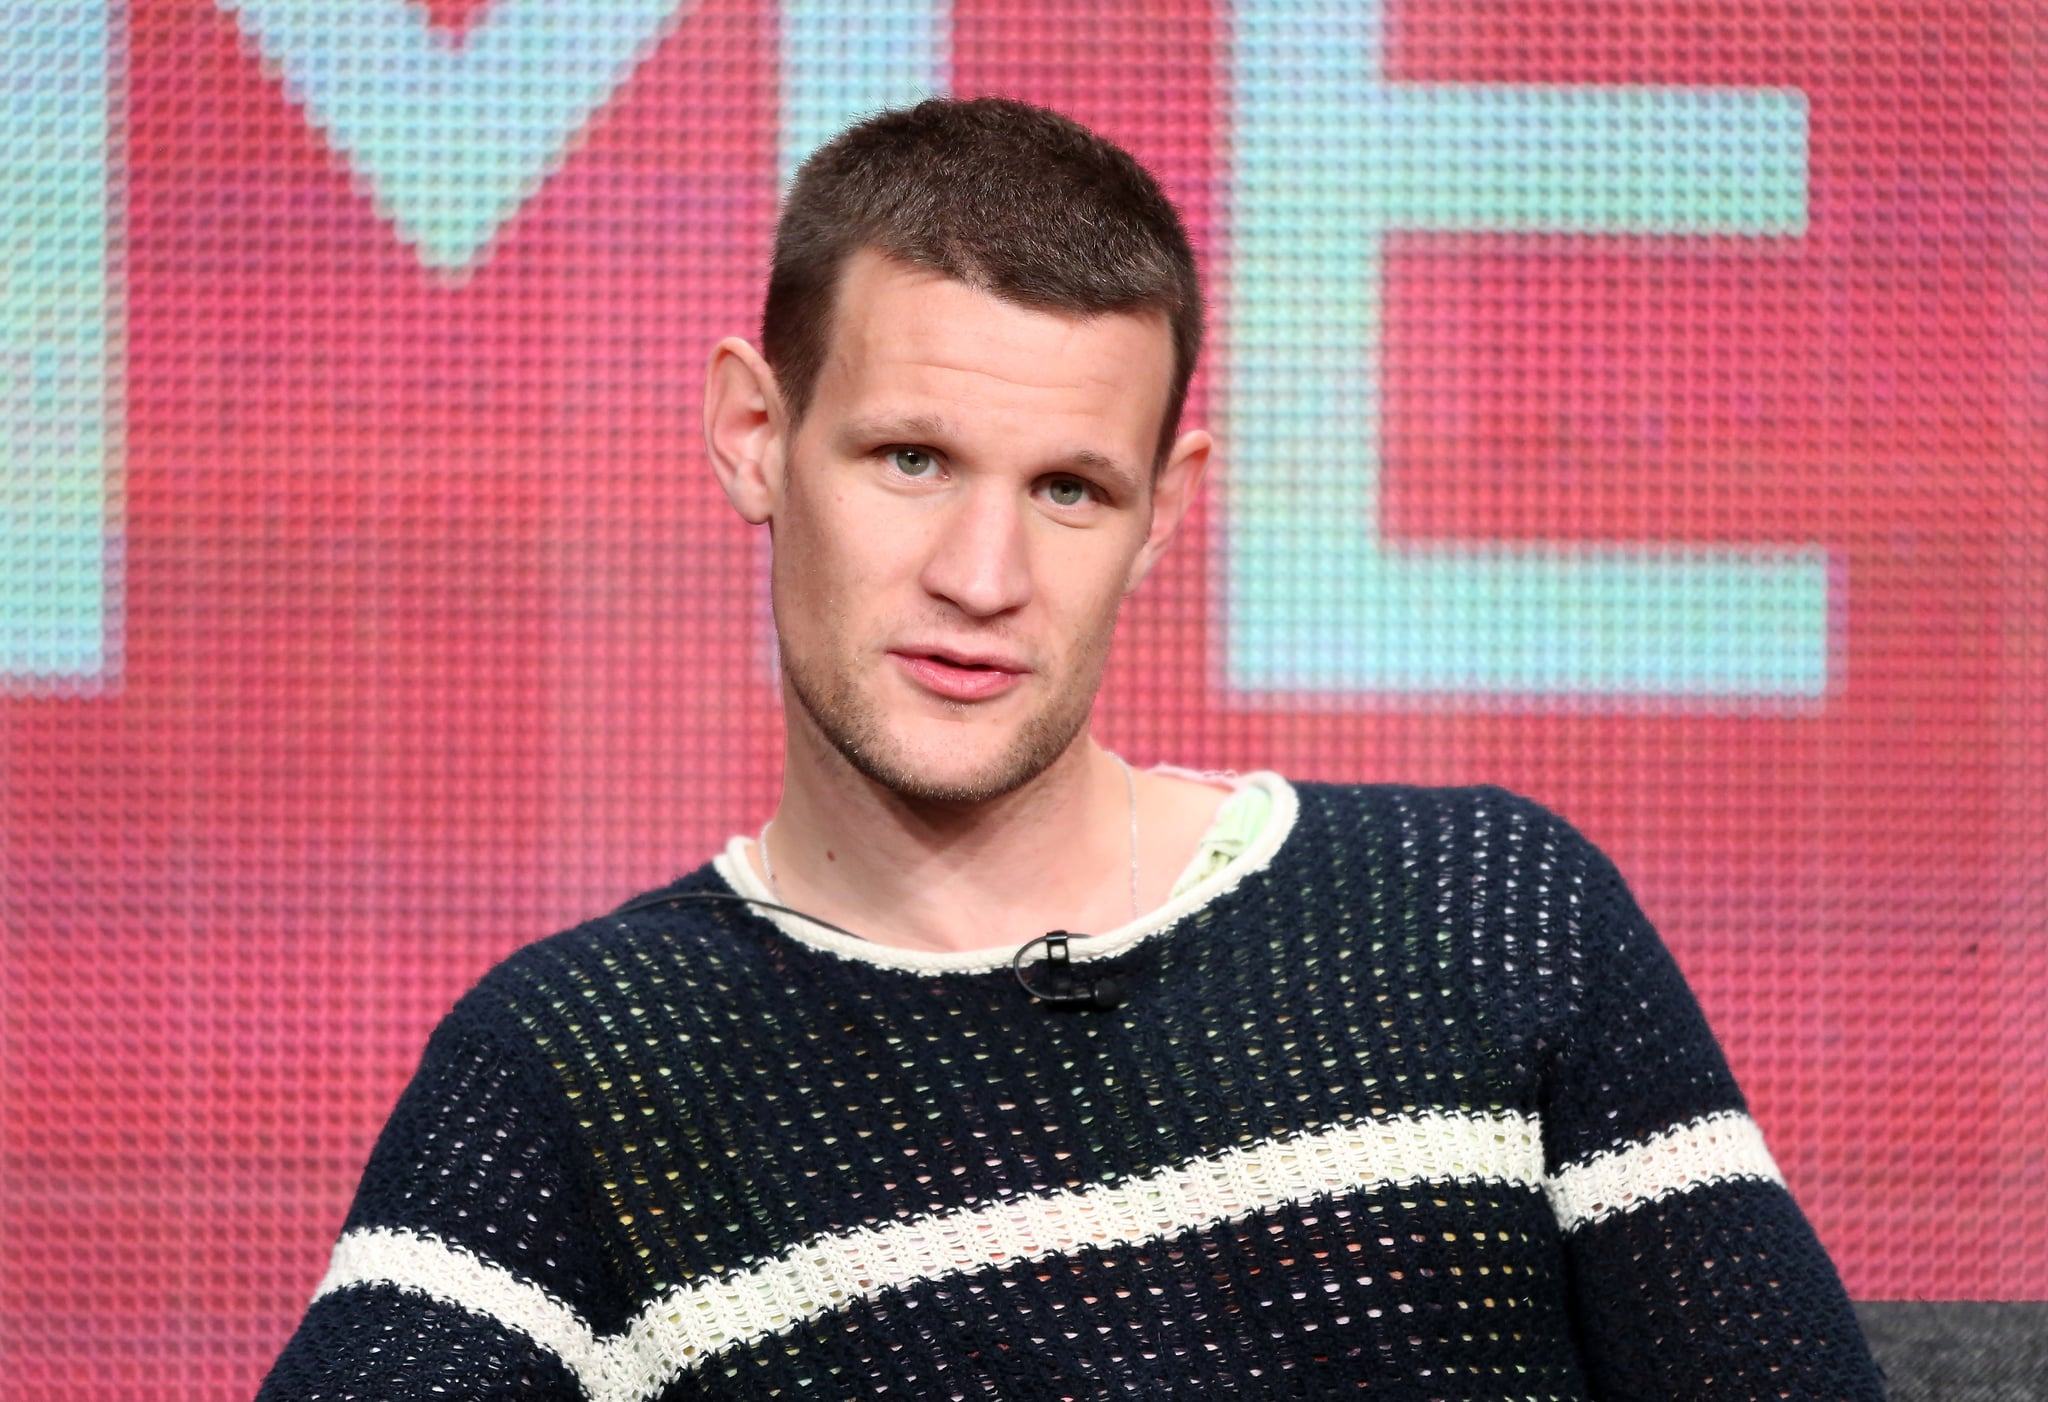 Matt Smith took the stage for the Doctor Who panel as part of the Television Critics Association Summer Press Tour.